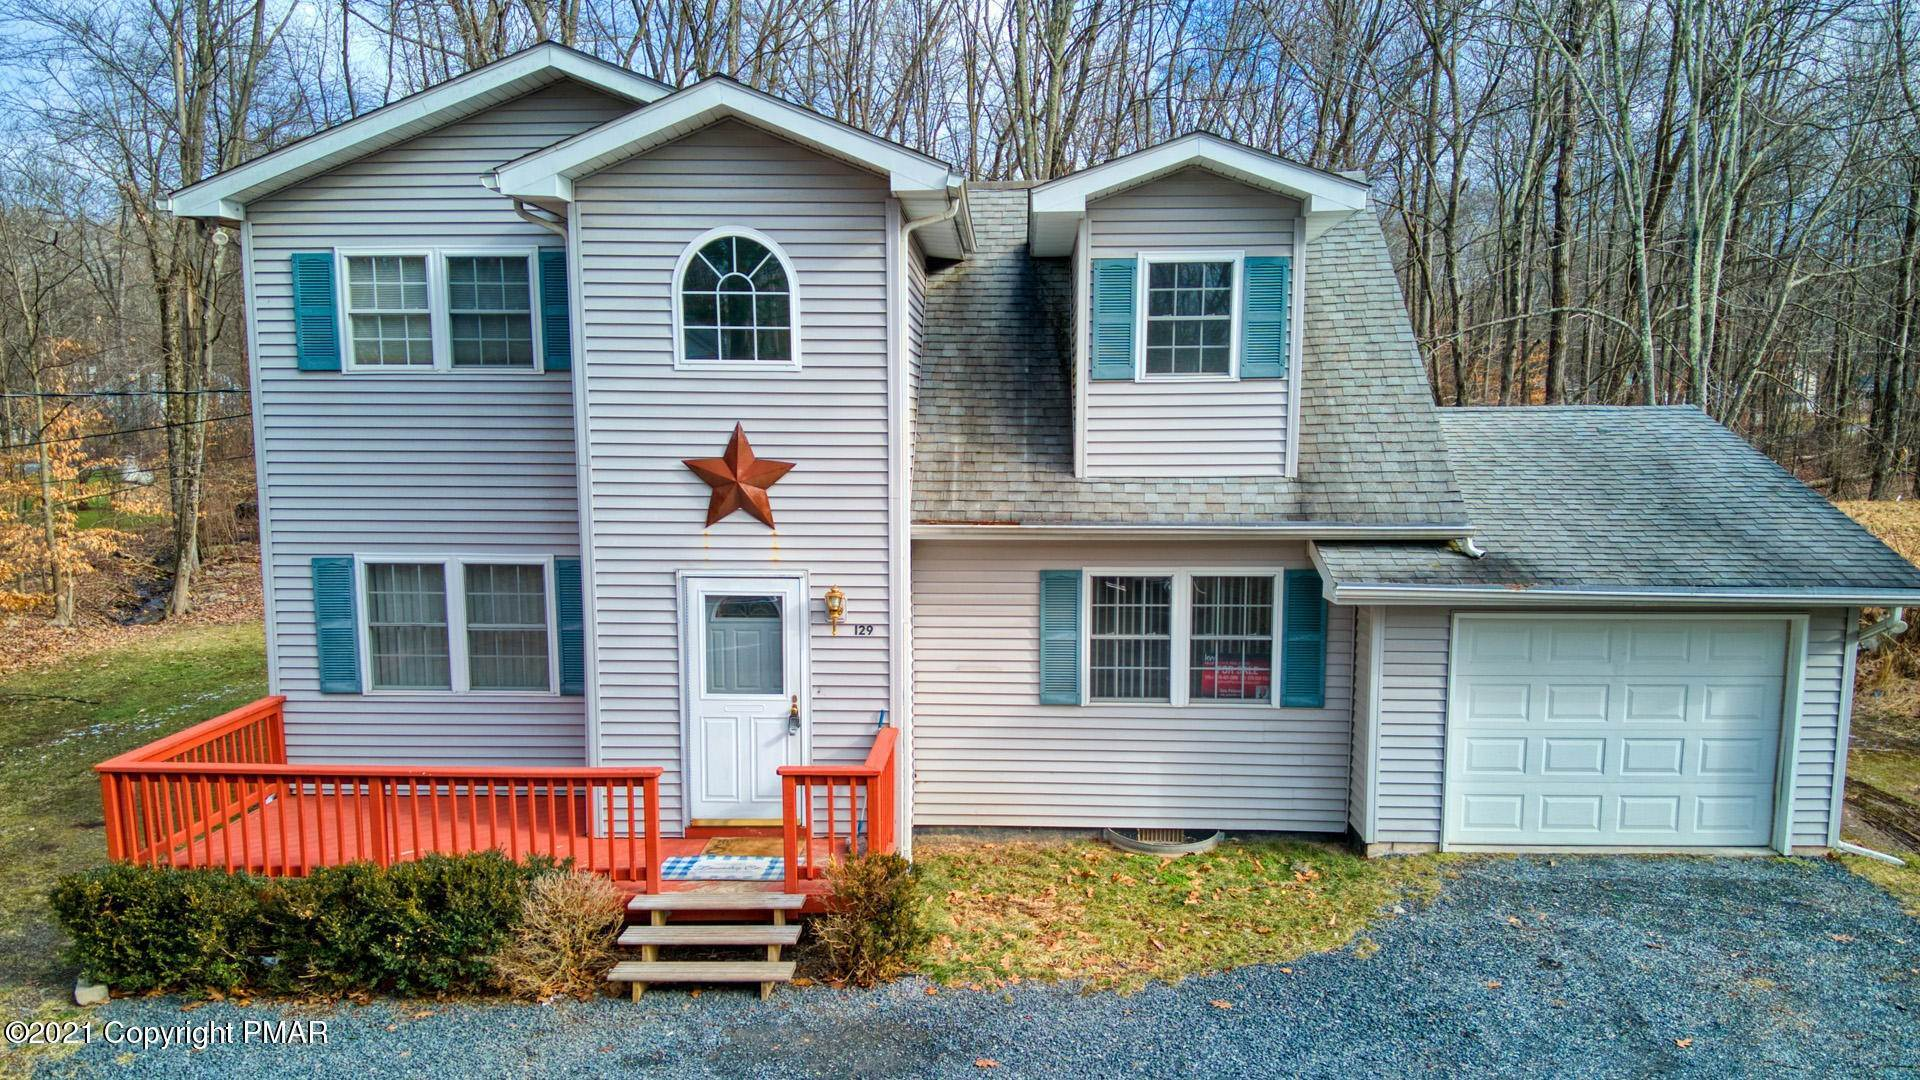 Single Family Homes for Sale at 129 Michelle Ln Bartonsville, Pennsylvania 18321 United States